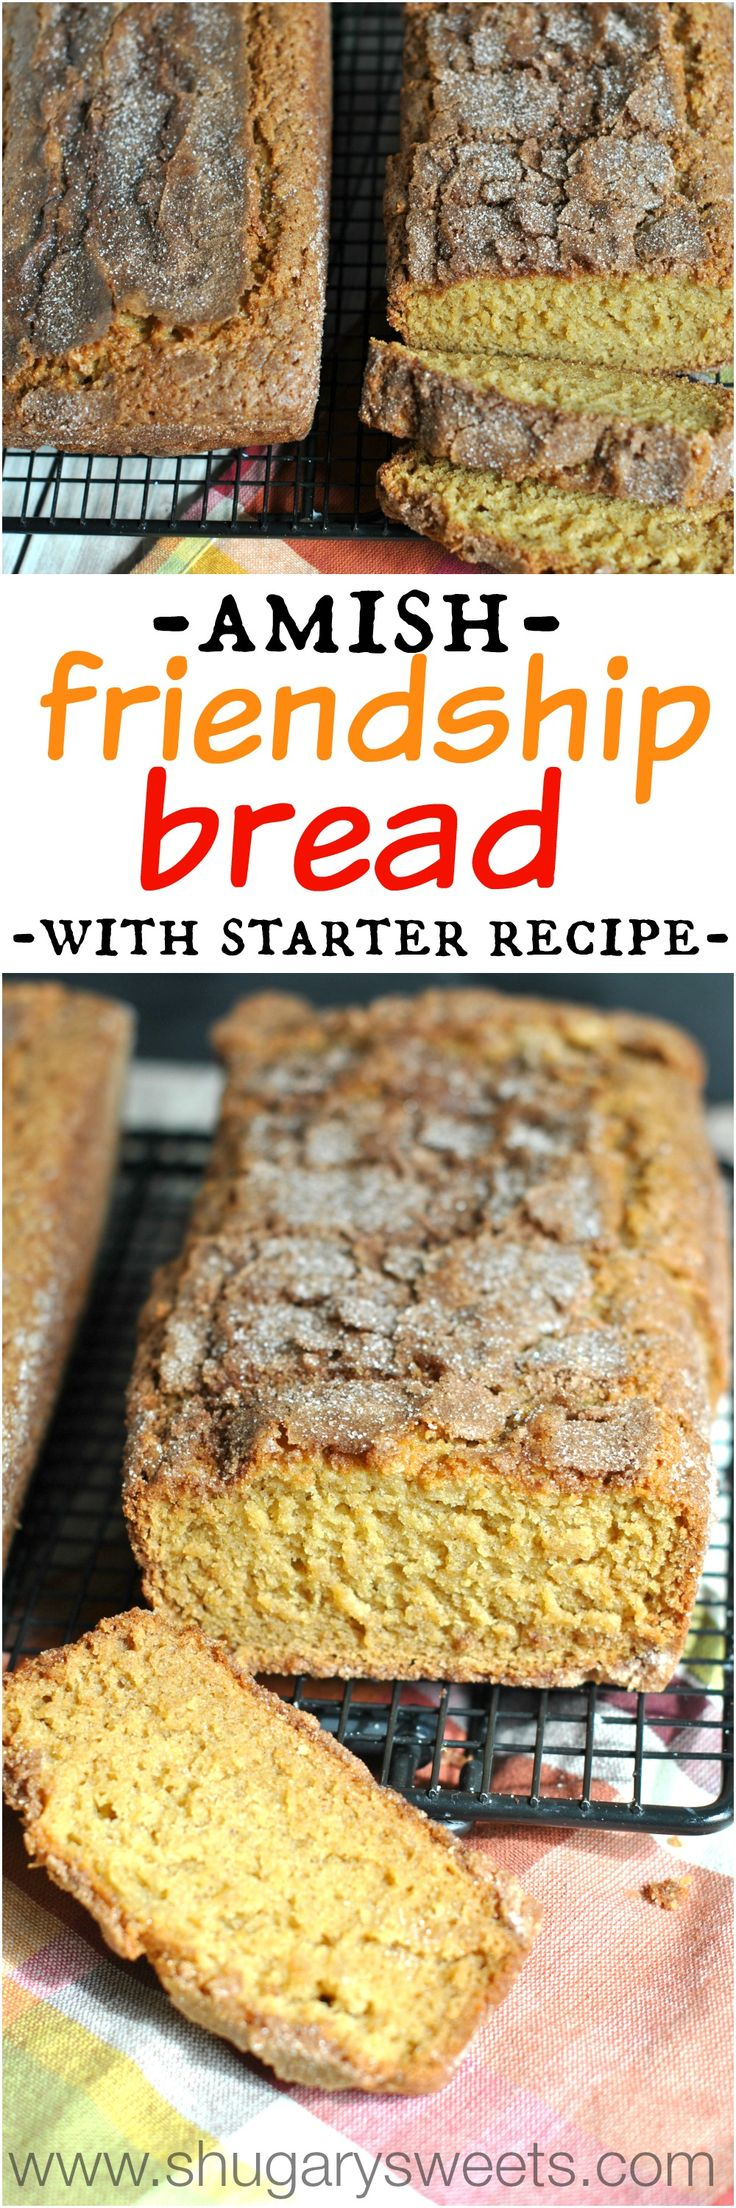 Amish Friendship Bread with starter recipe! Come bake some bread and share with your friends this delicious cinnamon bread recipe!